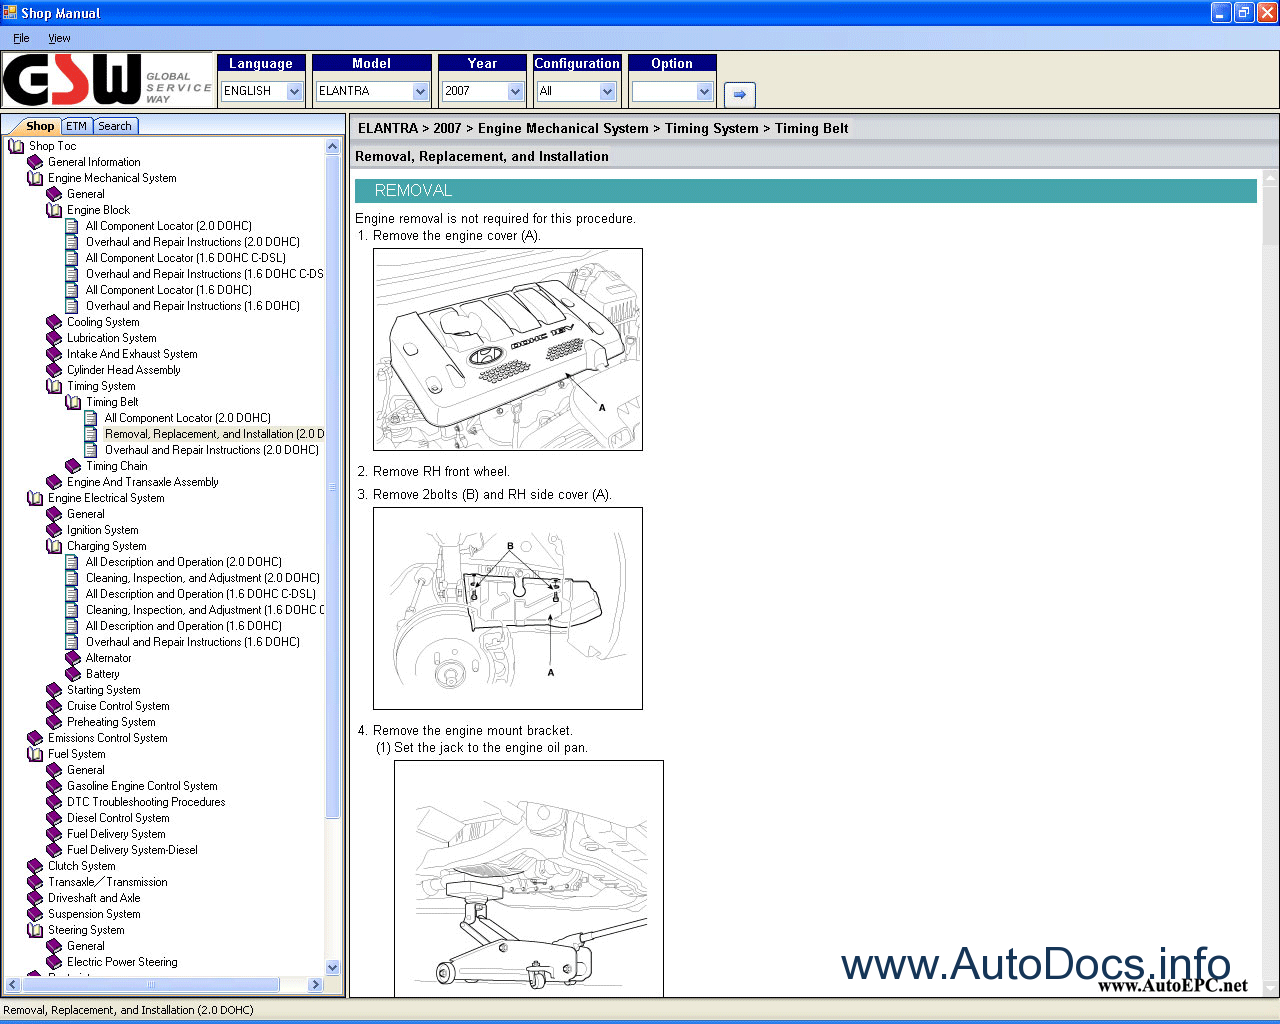 ... es el reemplazo del hyundai excel pdf download of toyota factory  service repair manuals – toyota 4runner, allion, altezza, avalon, avensis,  bb, ...